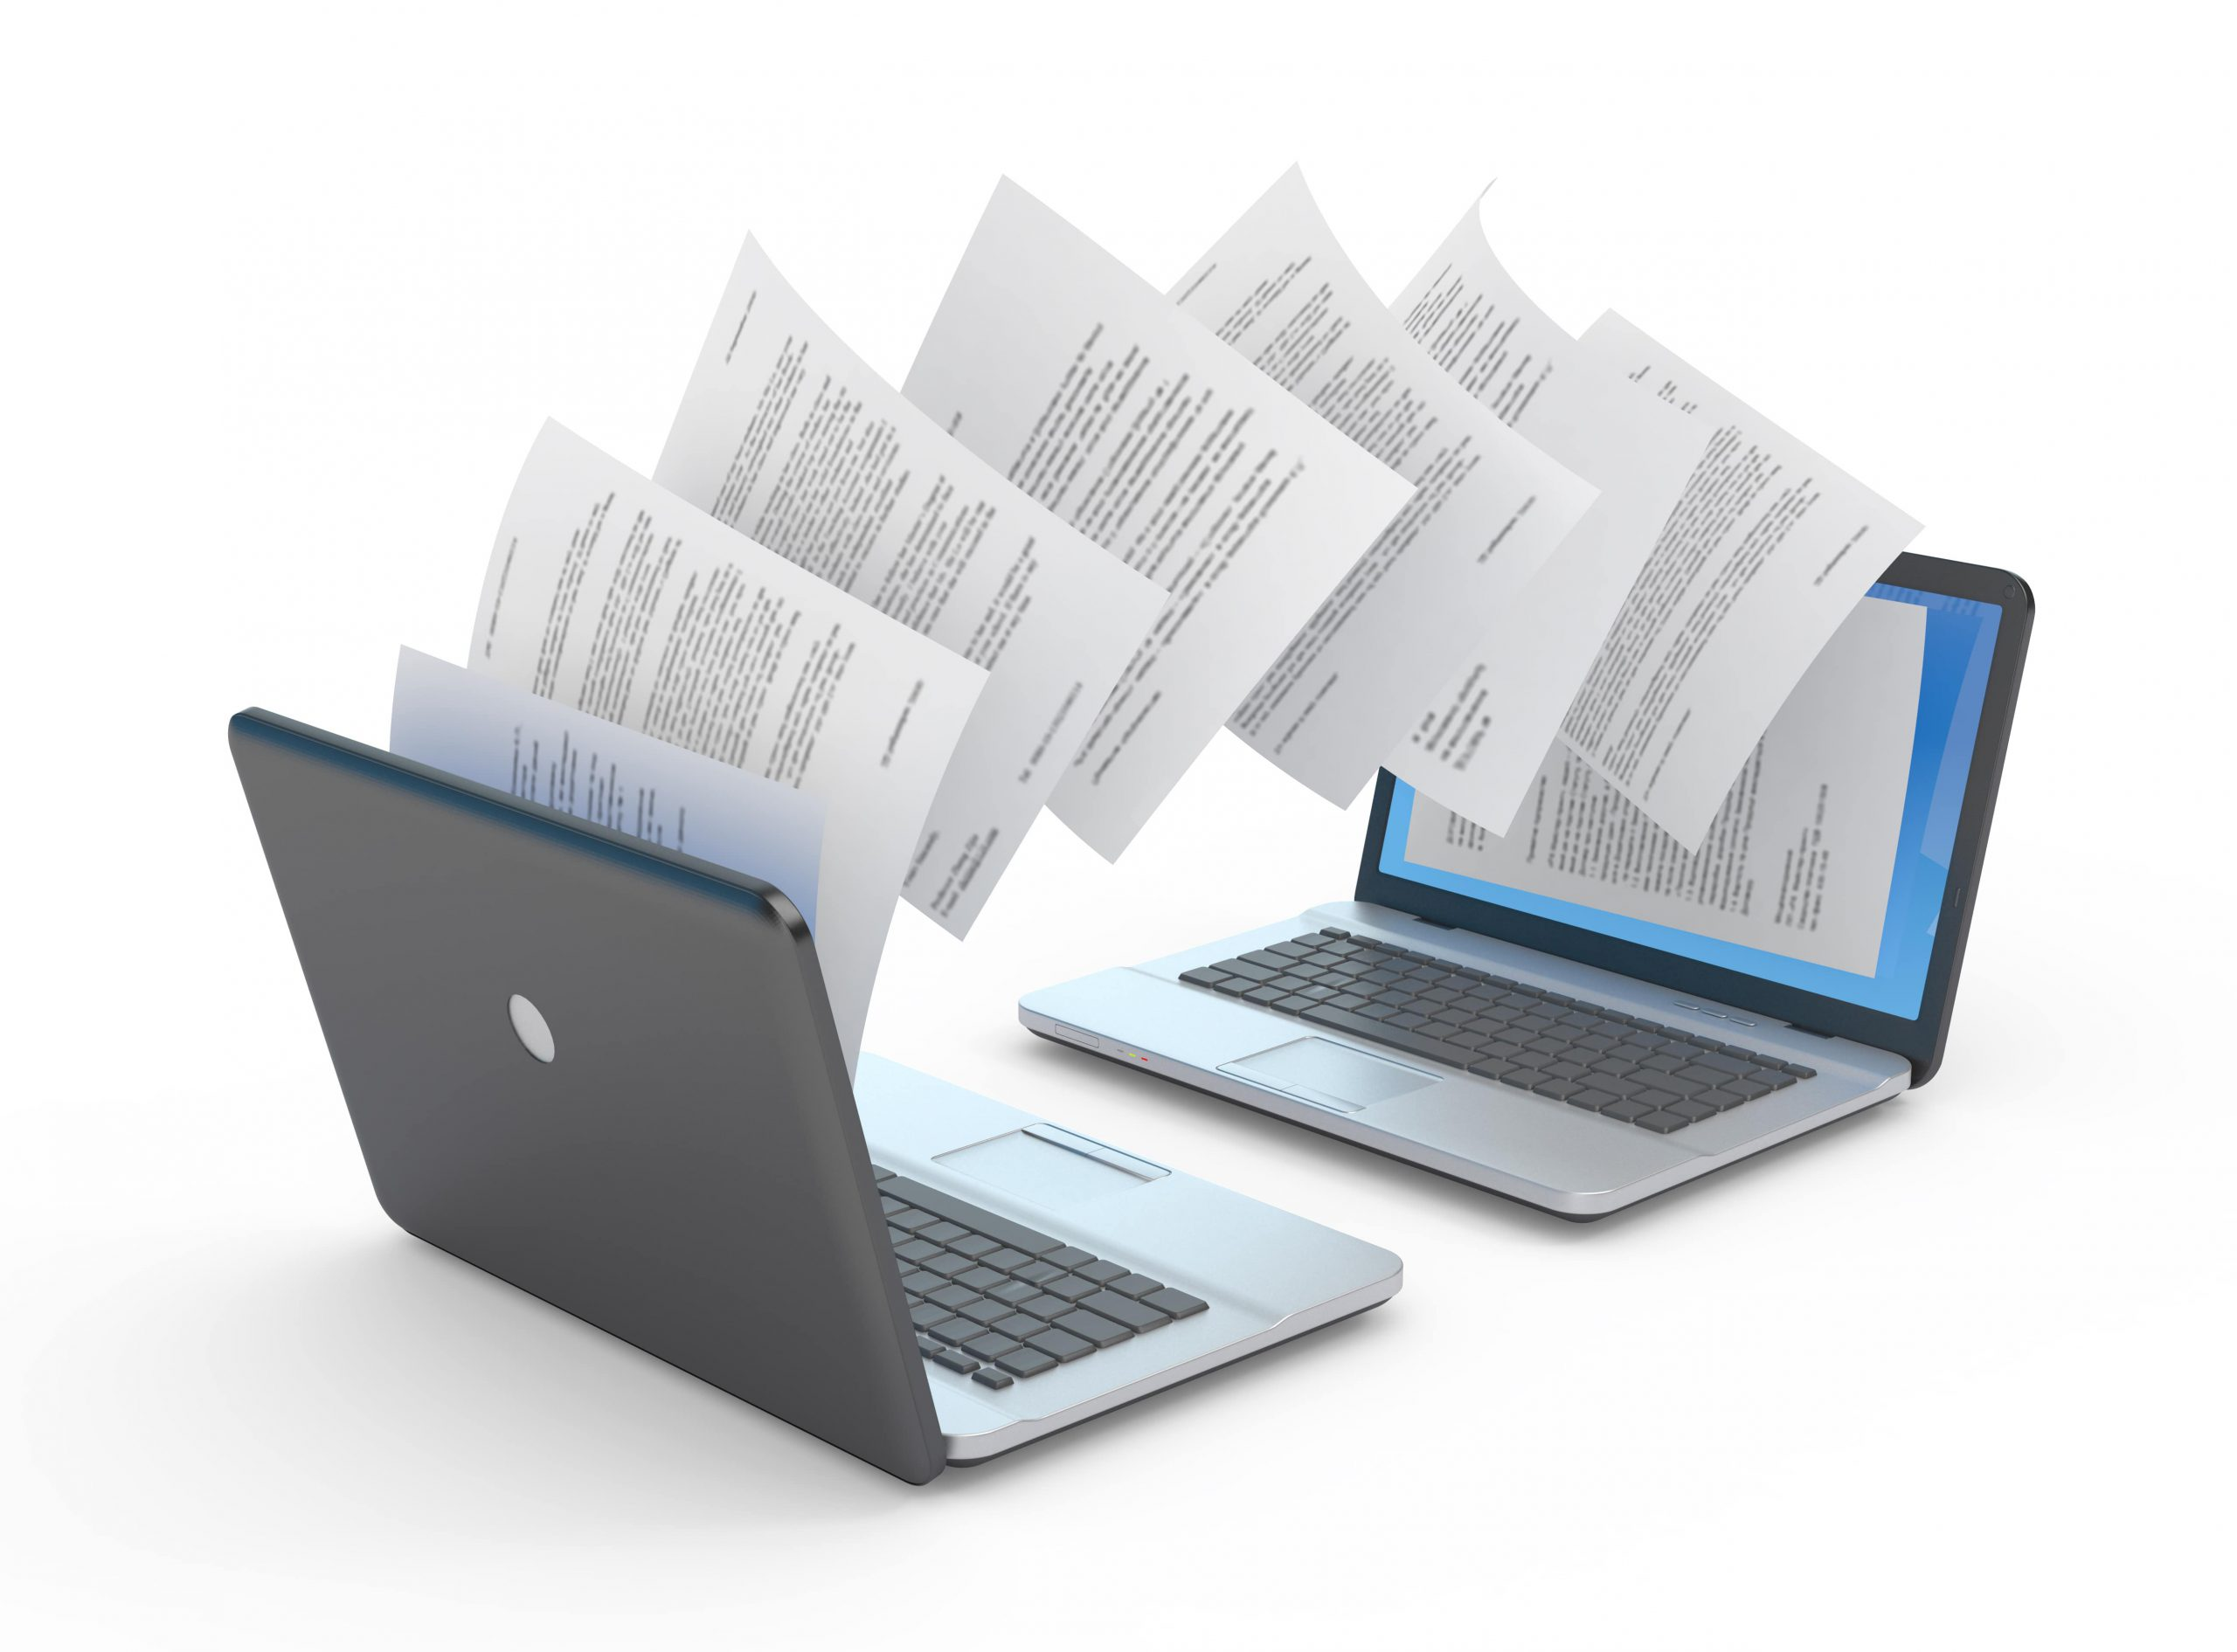 Documents being transferred between two laptops